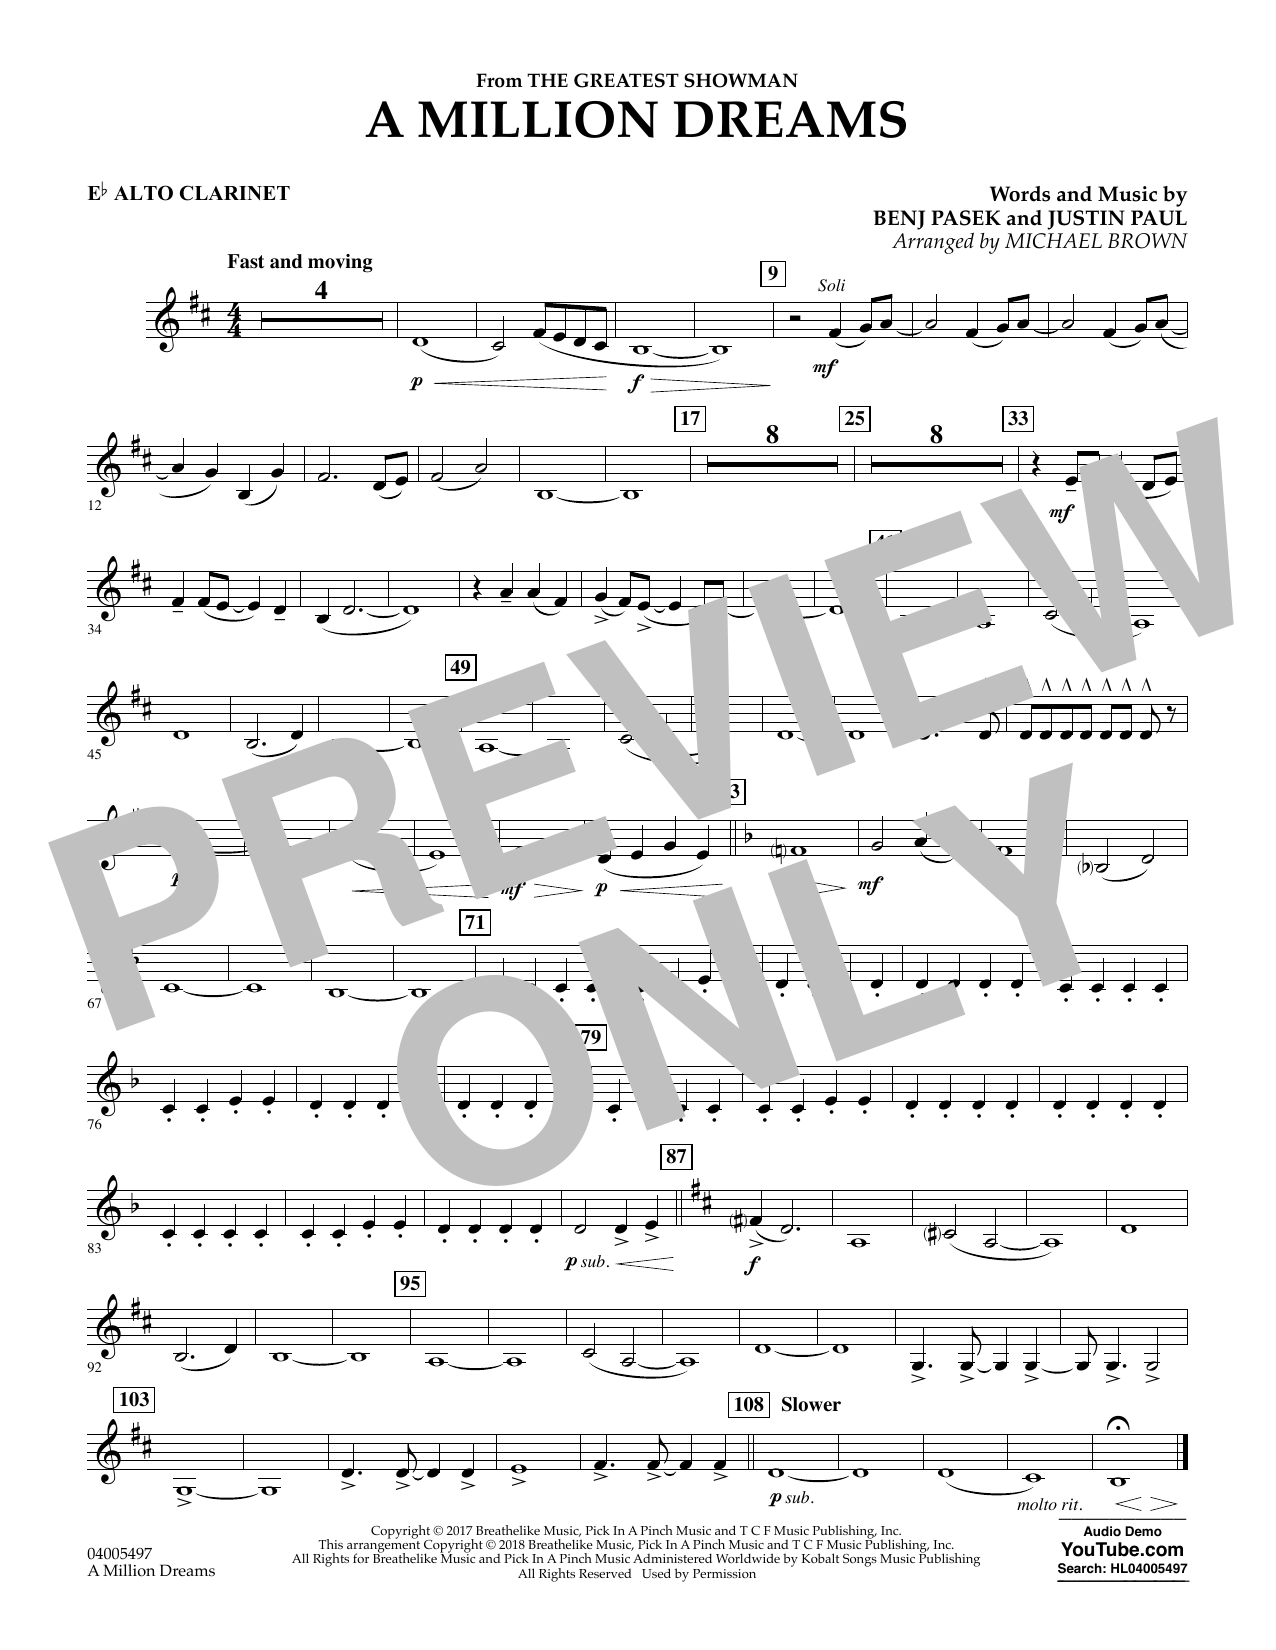 Pasek & Paul A Million Dreams (from The Greatest Showman) (arr. Michael Brown) - Eb Alto Clarinet sheet music notes and chords. Download Printable PDF.